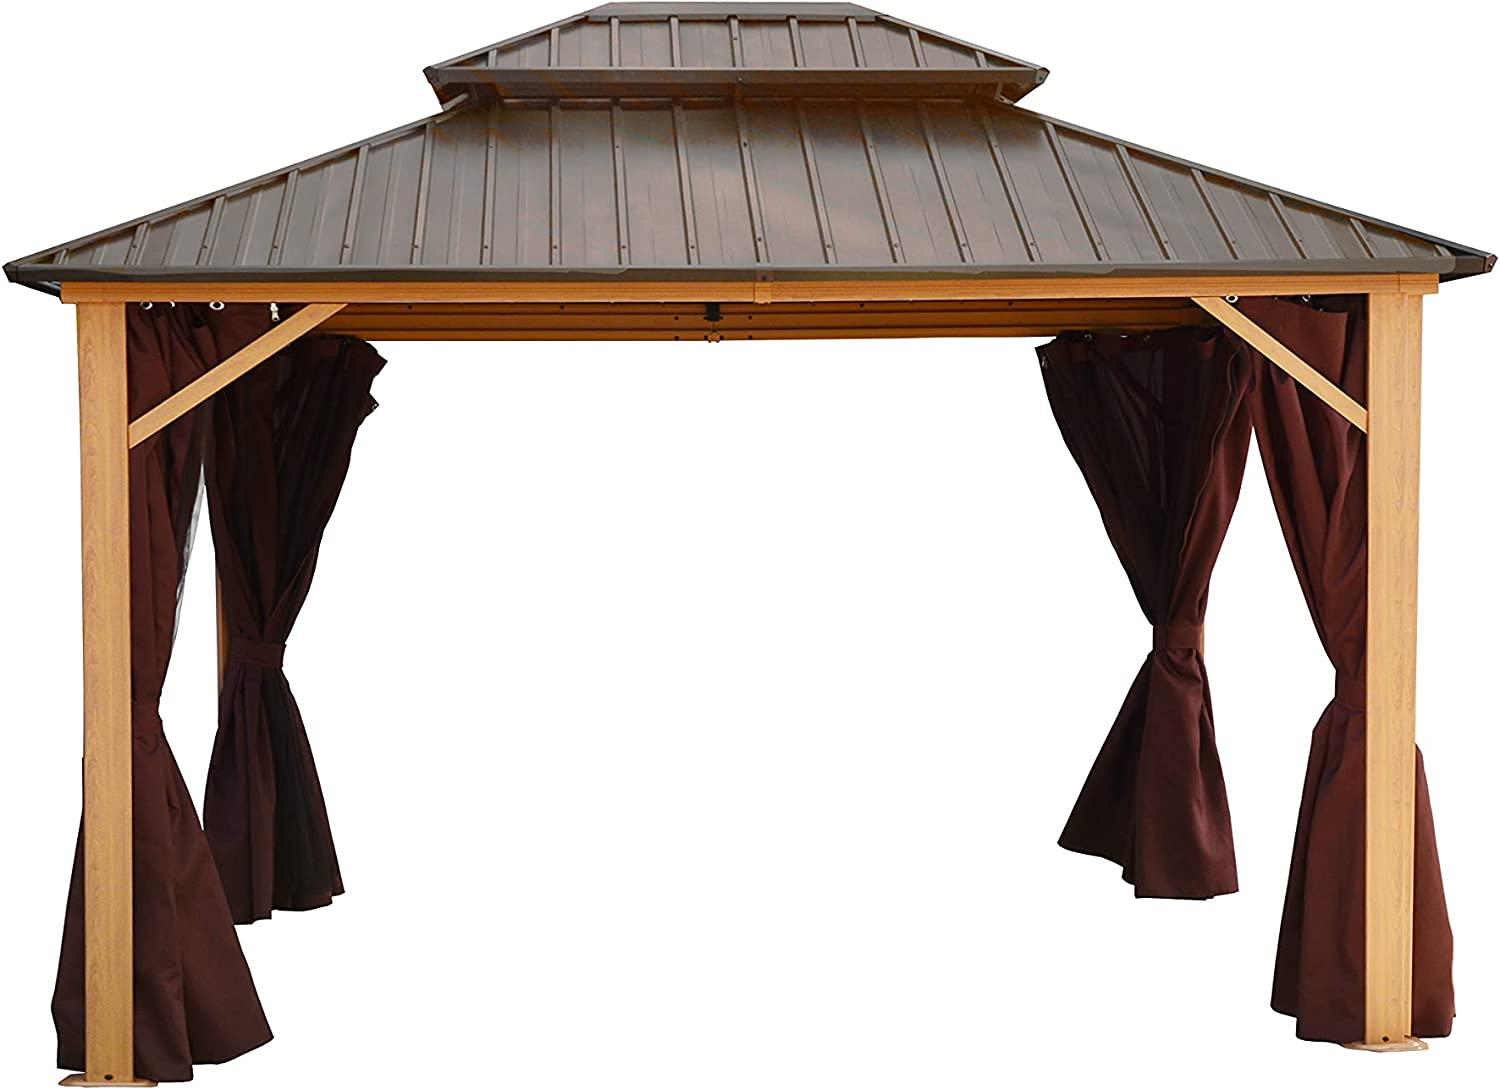 LUCKYBERRY 10' X Ranking TOP12 Jacksonville Mall 12' Outdoor Galvanized Steel Roof Doubl Hardtop